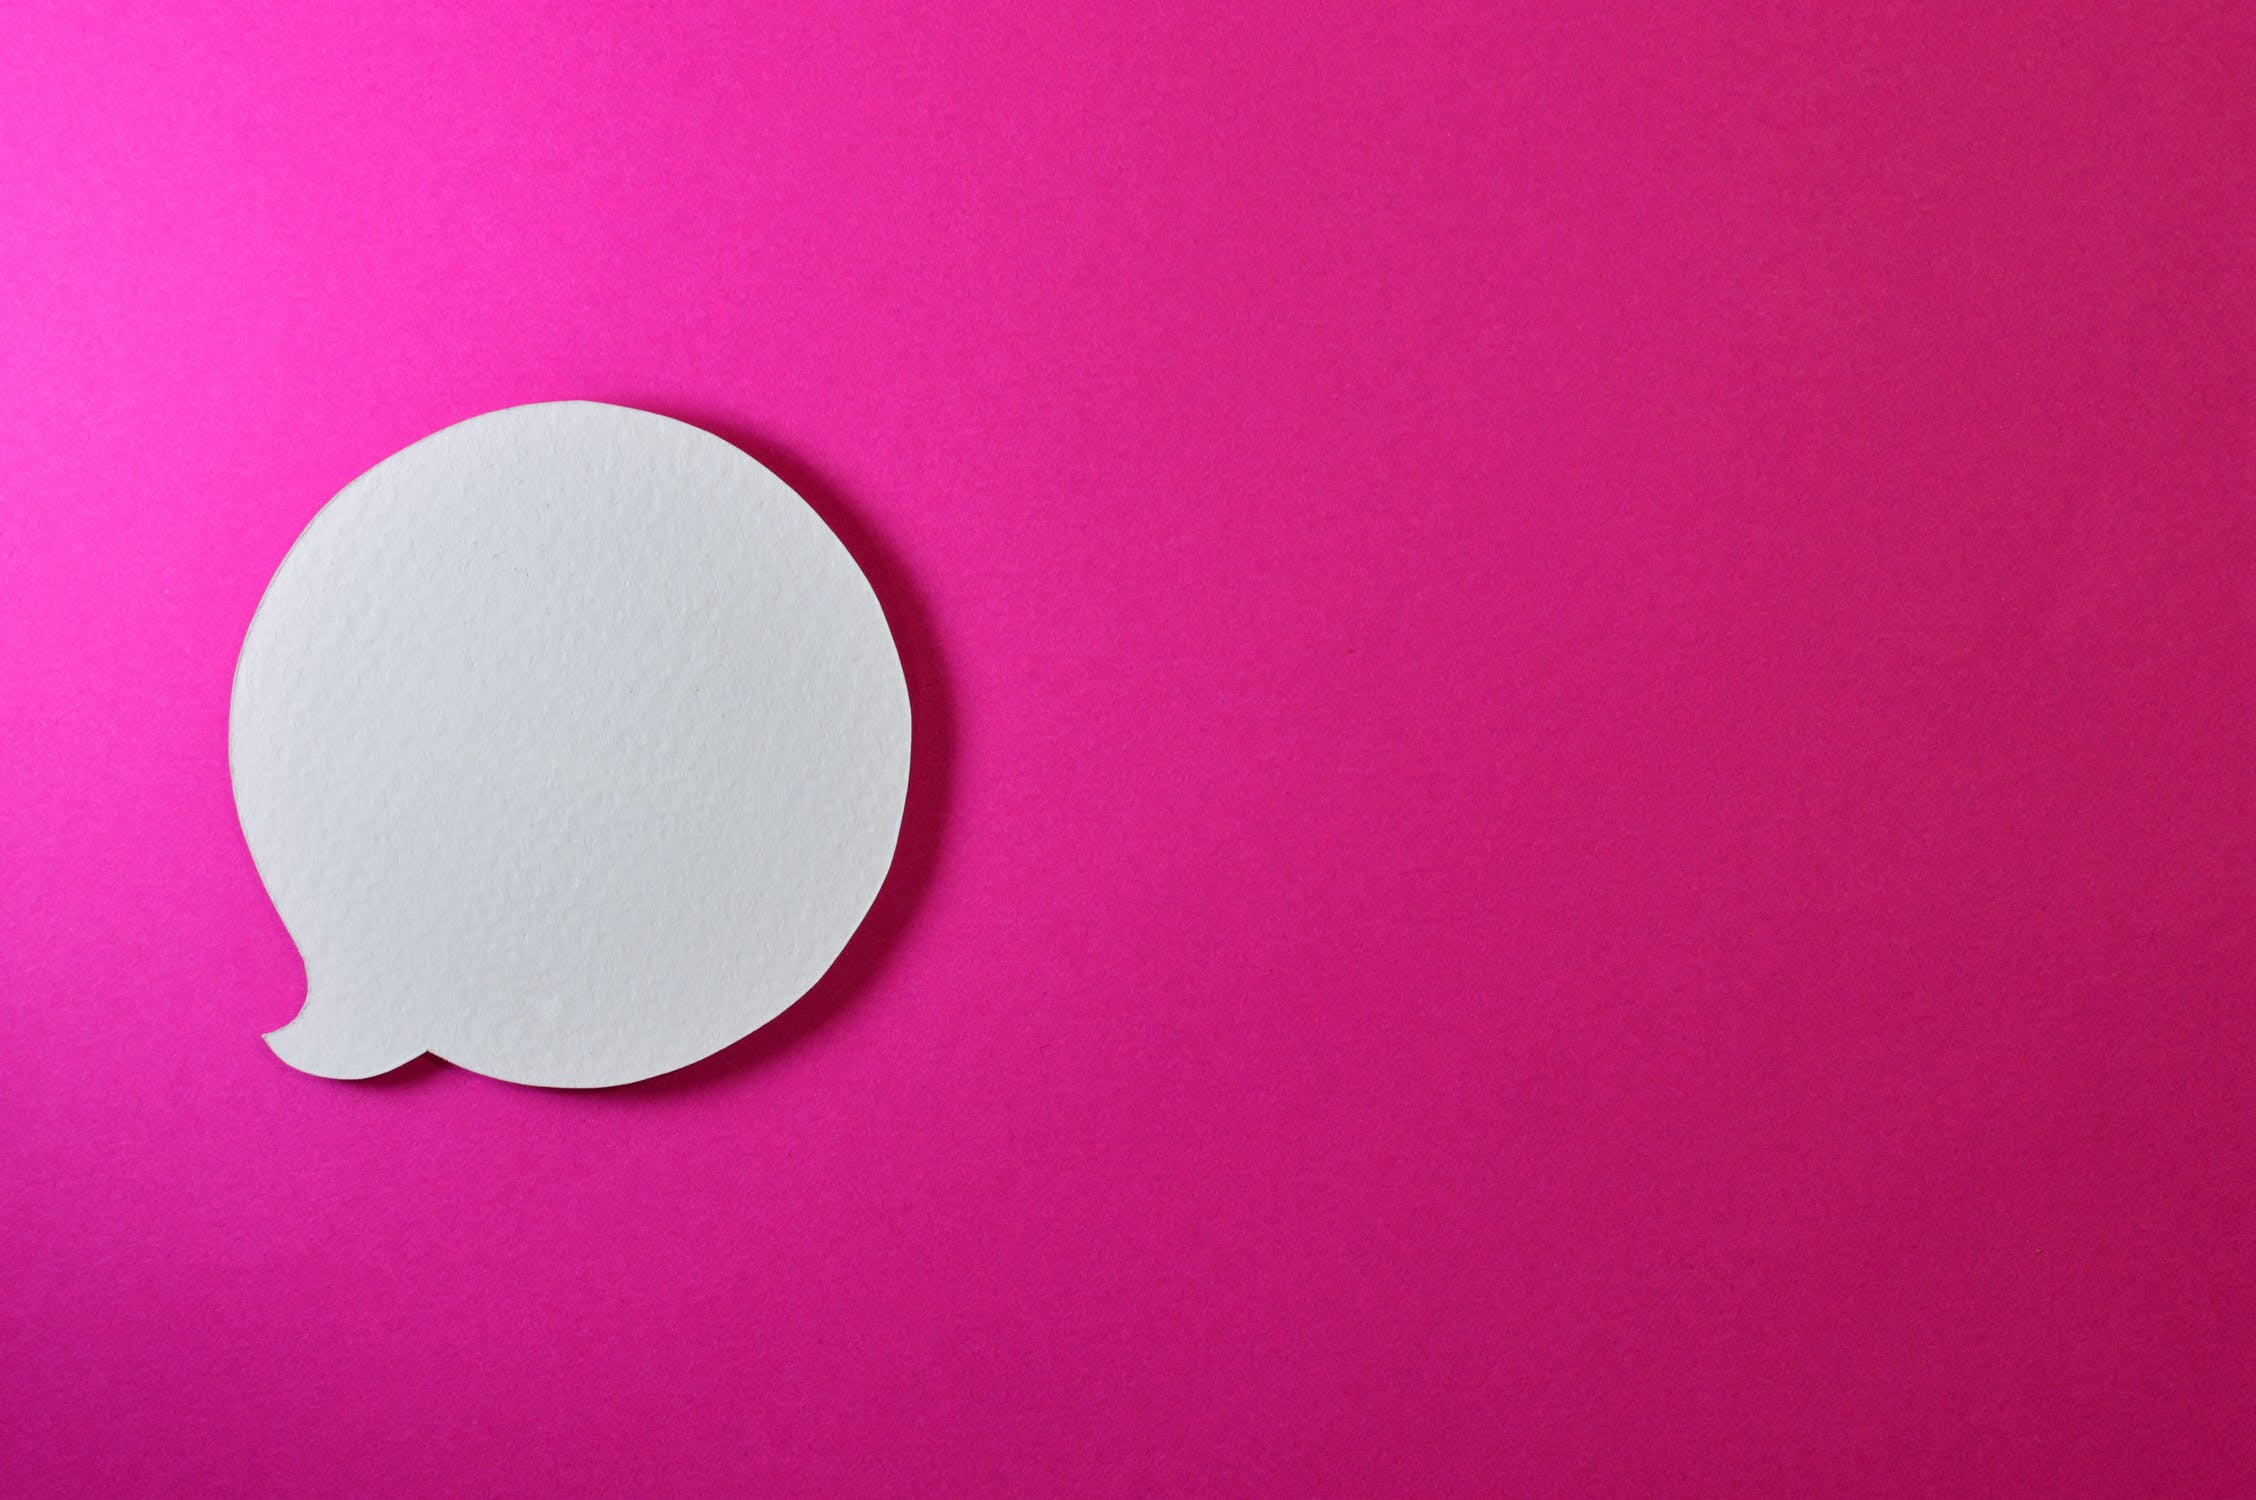 A paper speech bubble against a pink background because communication is an important part of office ethics.